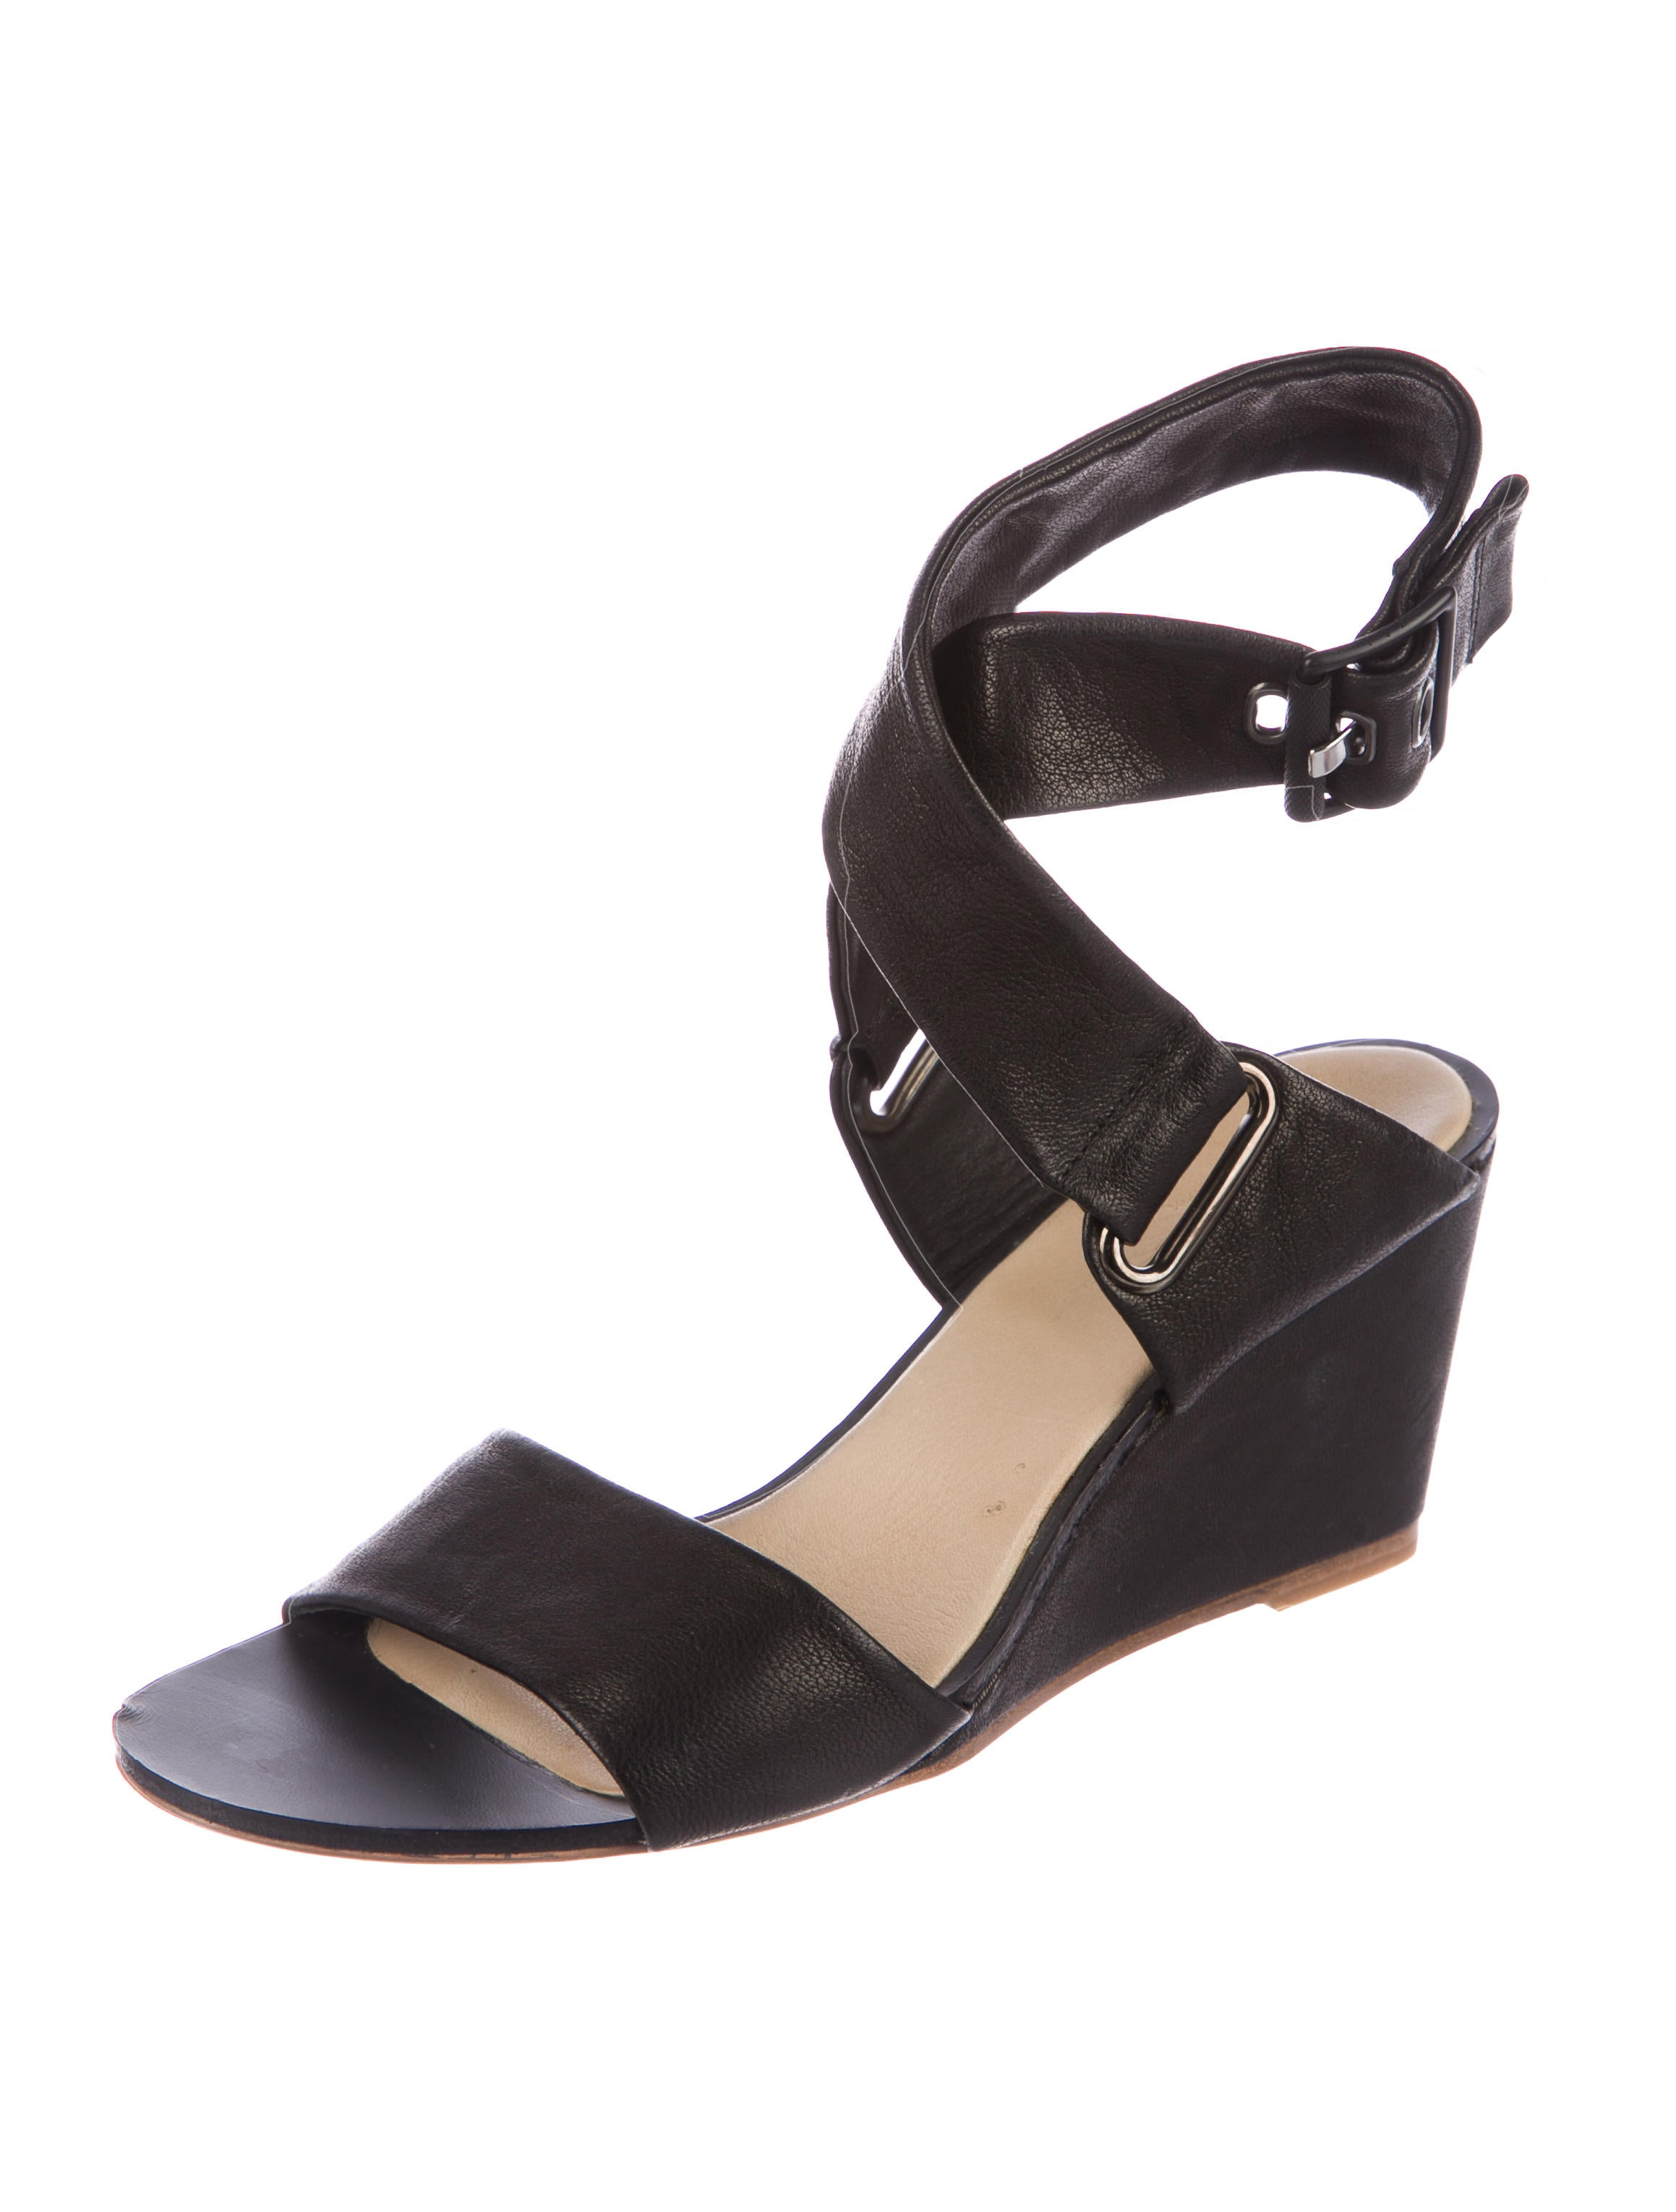 Rag & Bone Leather Wrap-Around Wedges browse cheap price clearance pre order outlet real ZZRDJAN